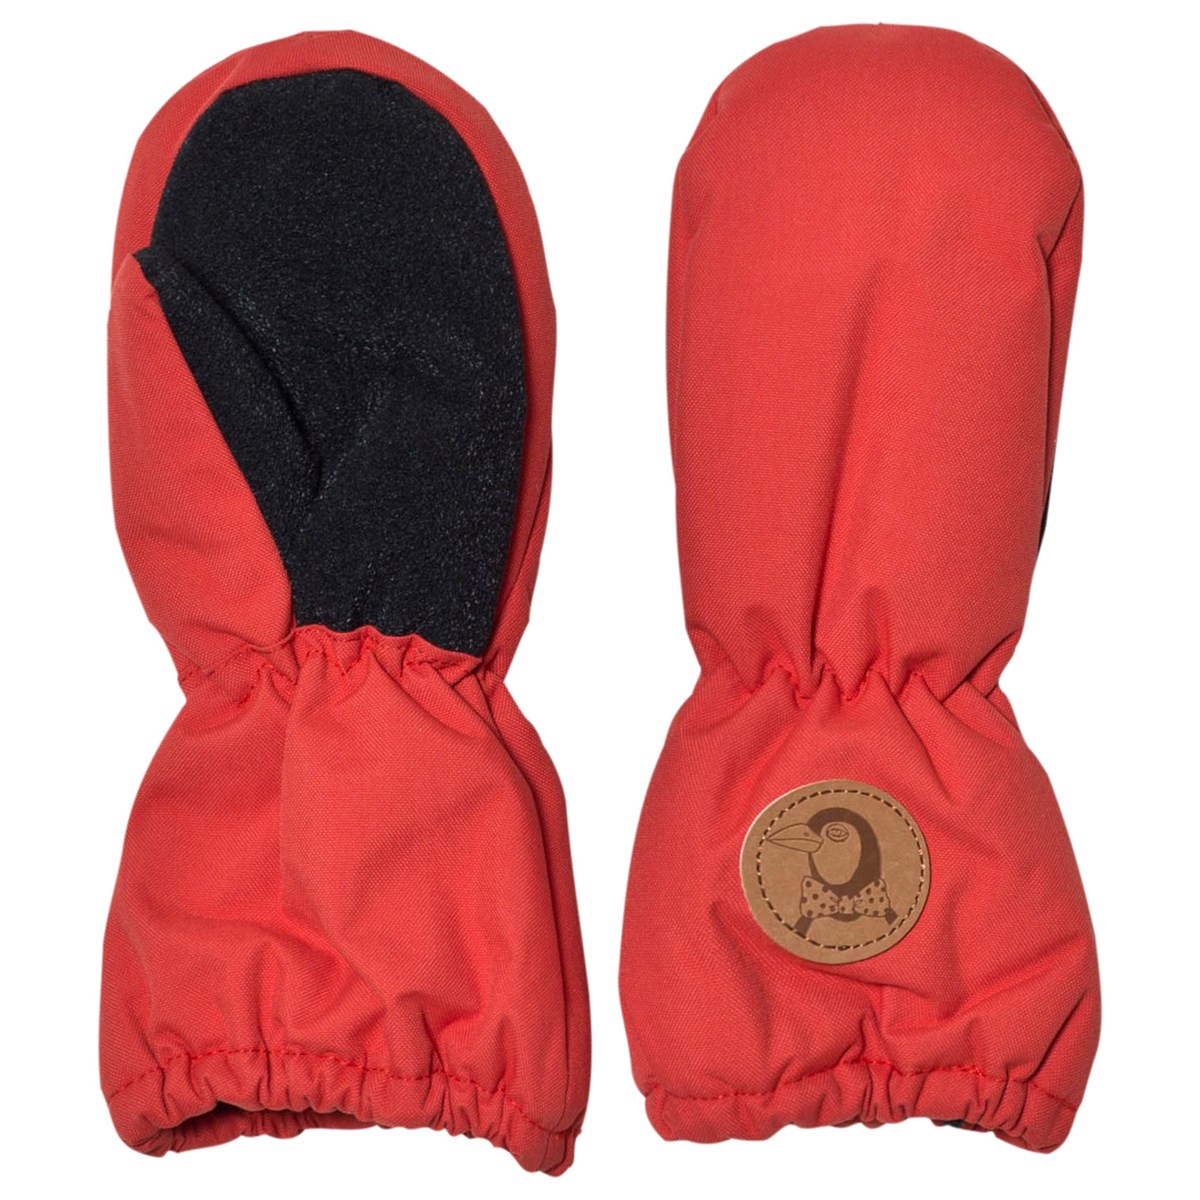 127da0e62 Mini Rodini - Alaska Glove Red - Babyshop.com